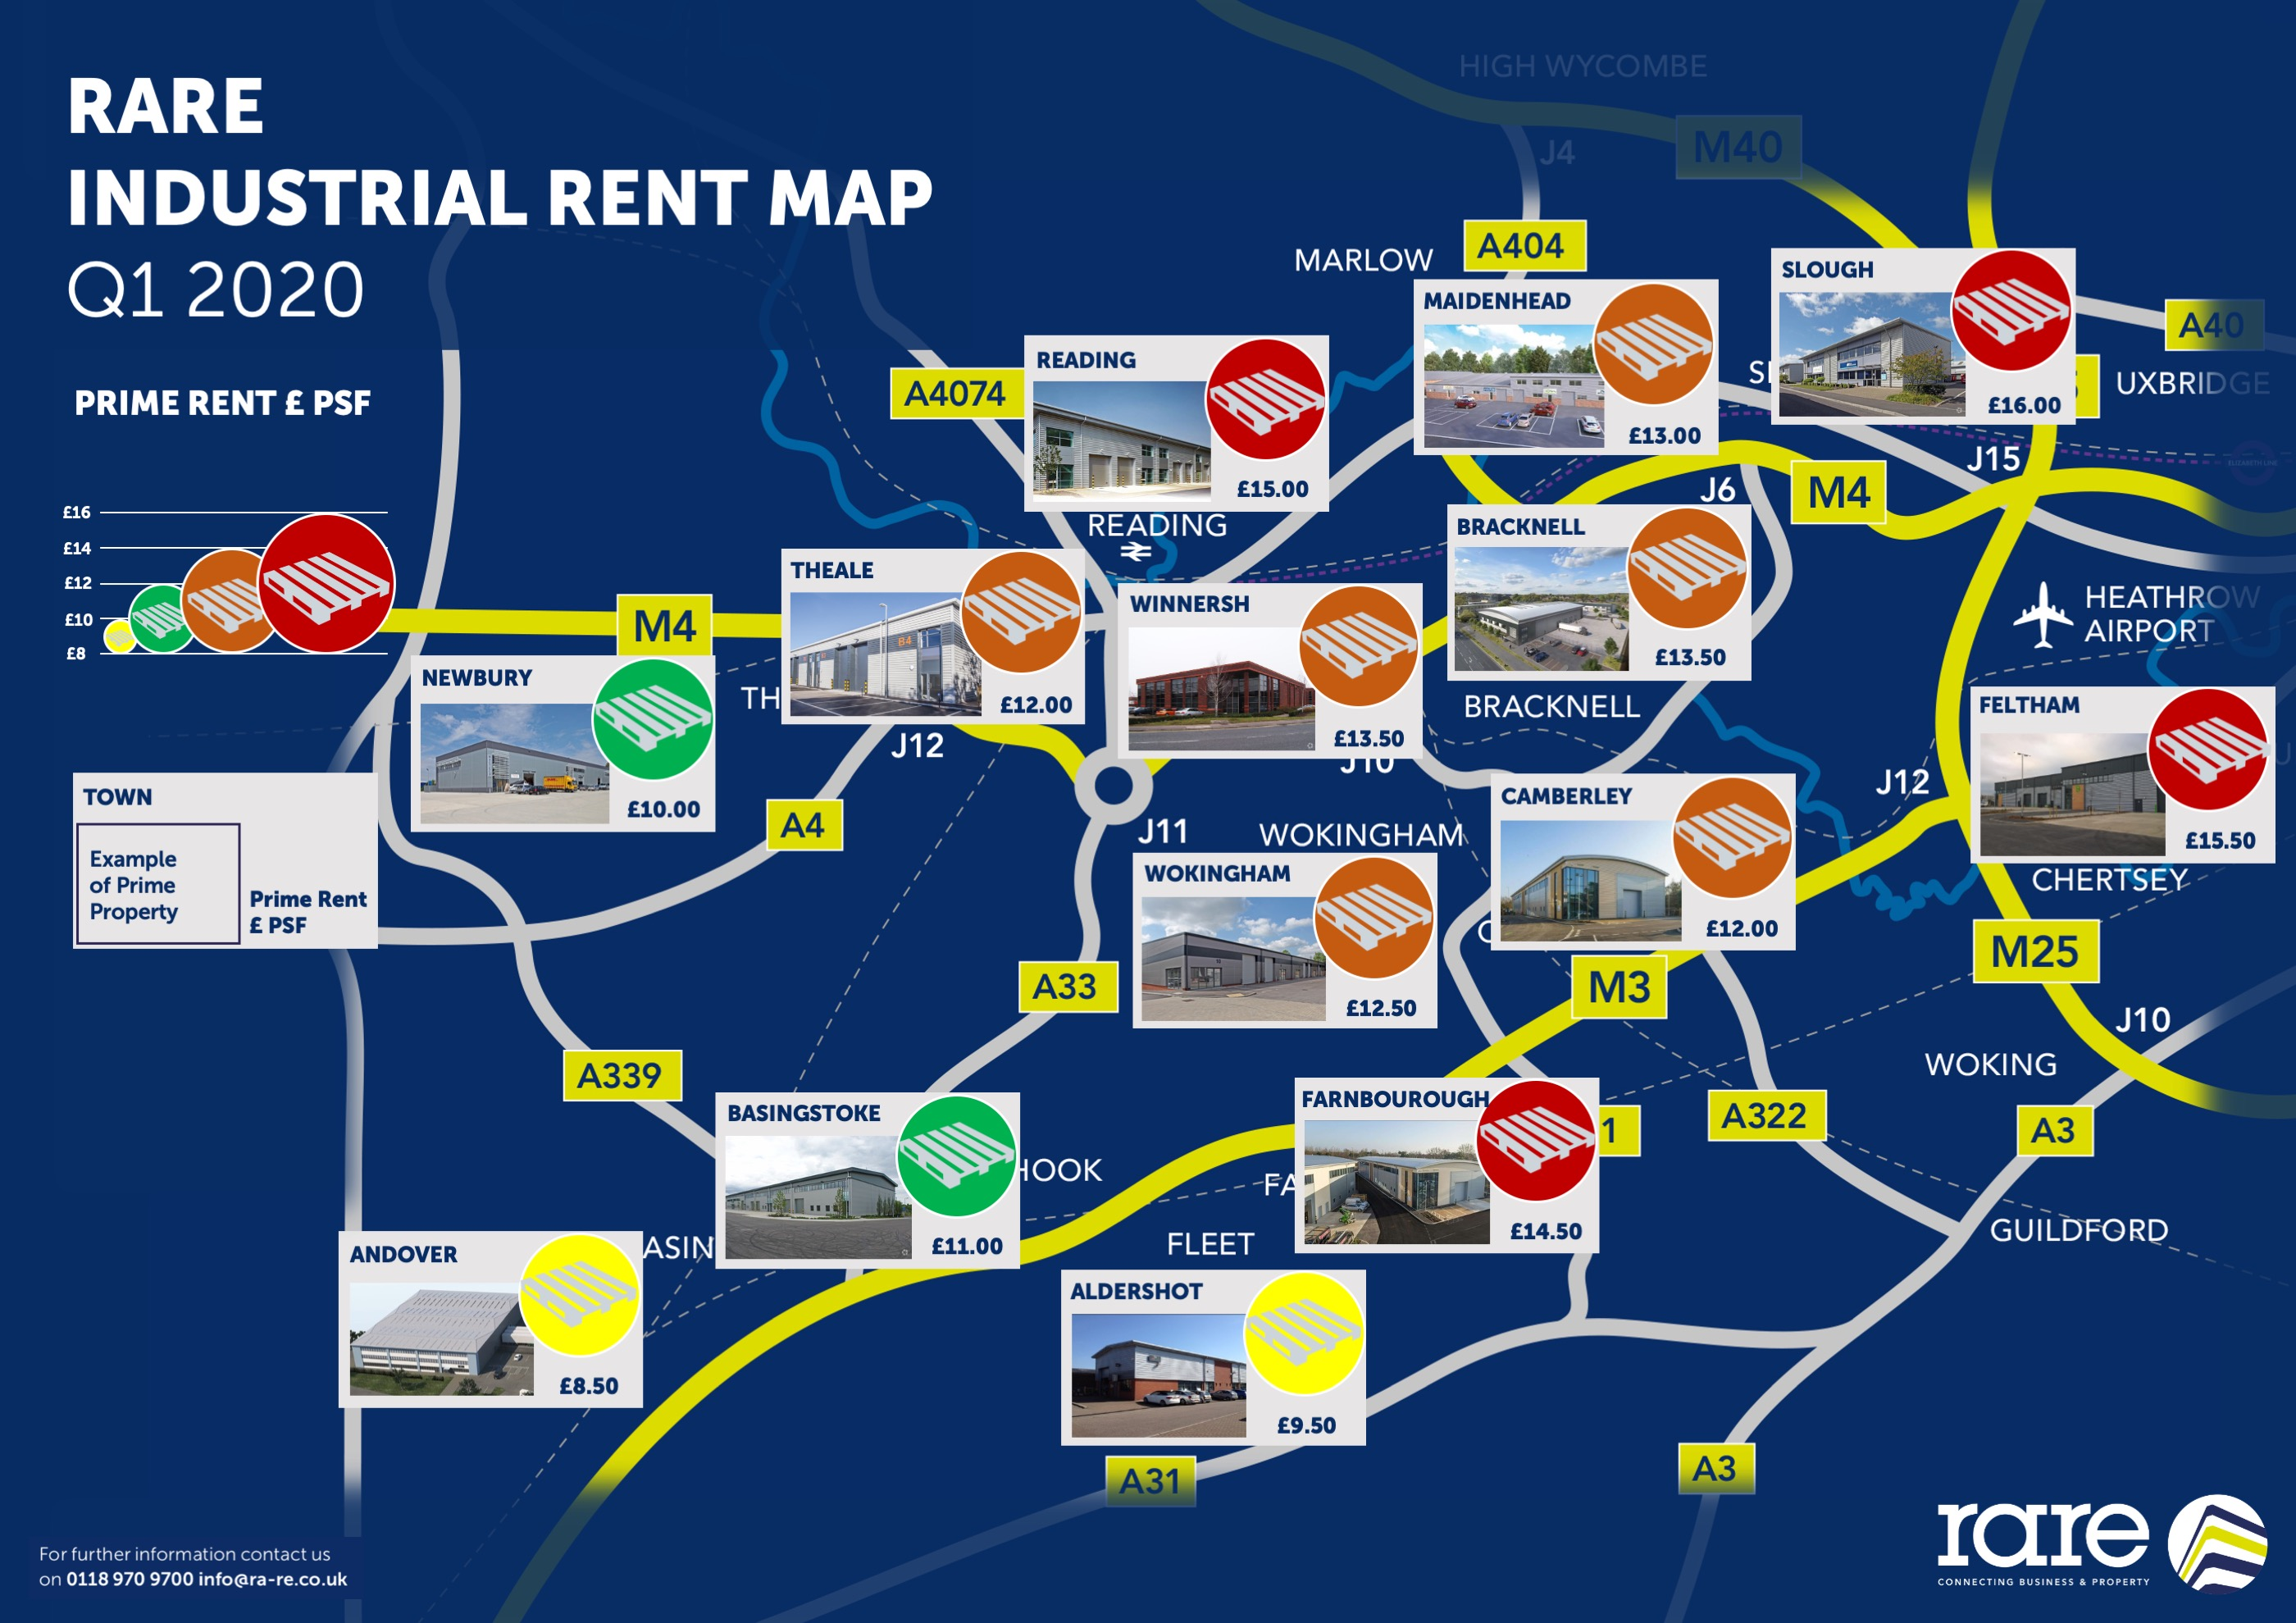 RARE Industrial Rent Map Q1 2020